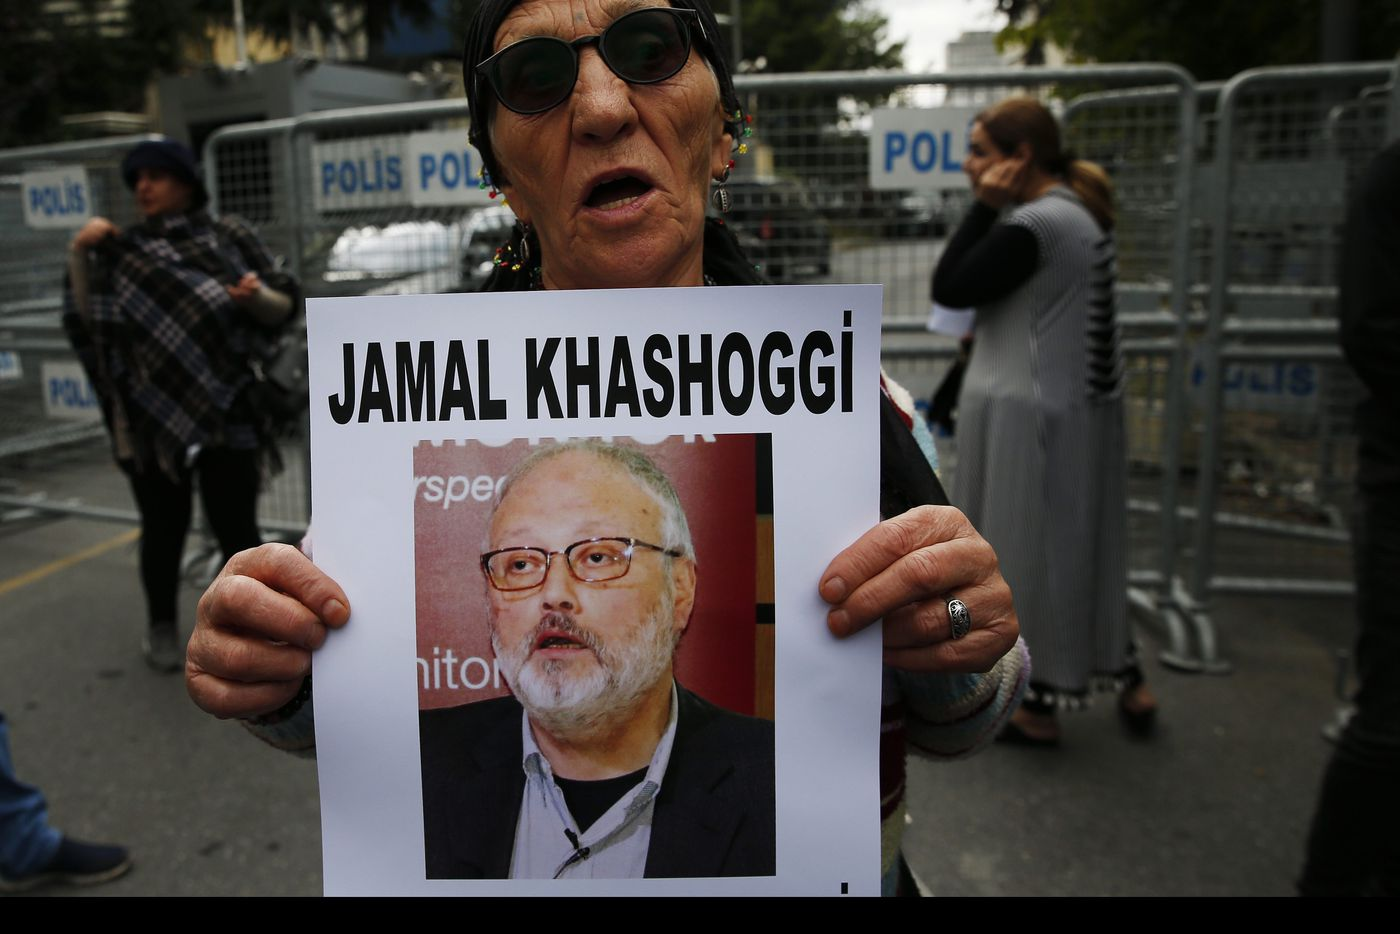 Jamal Khashoggi affair highlights what happens when America abdicates role as free press defender | Trudy Rubin